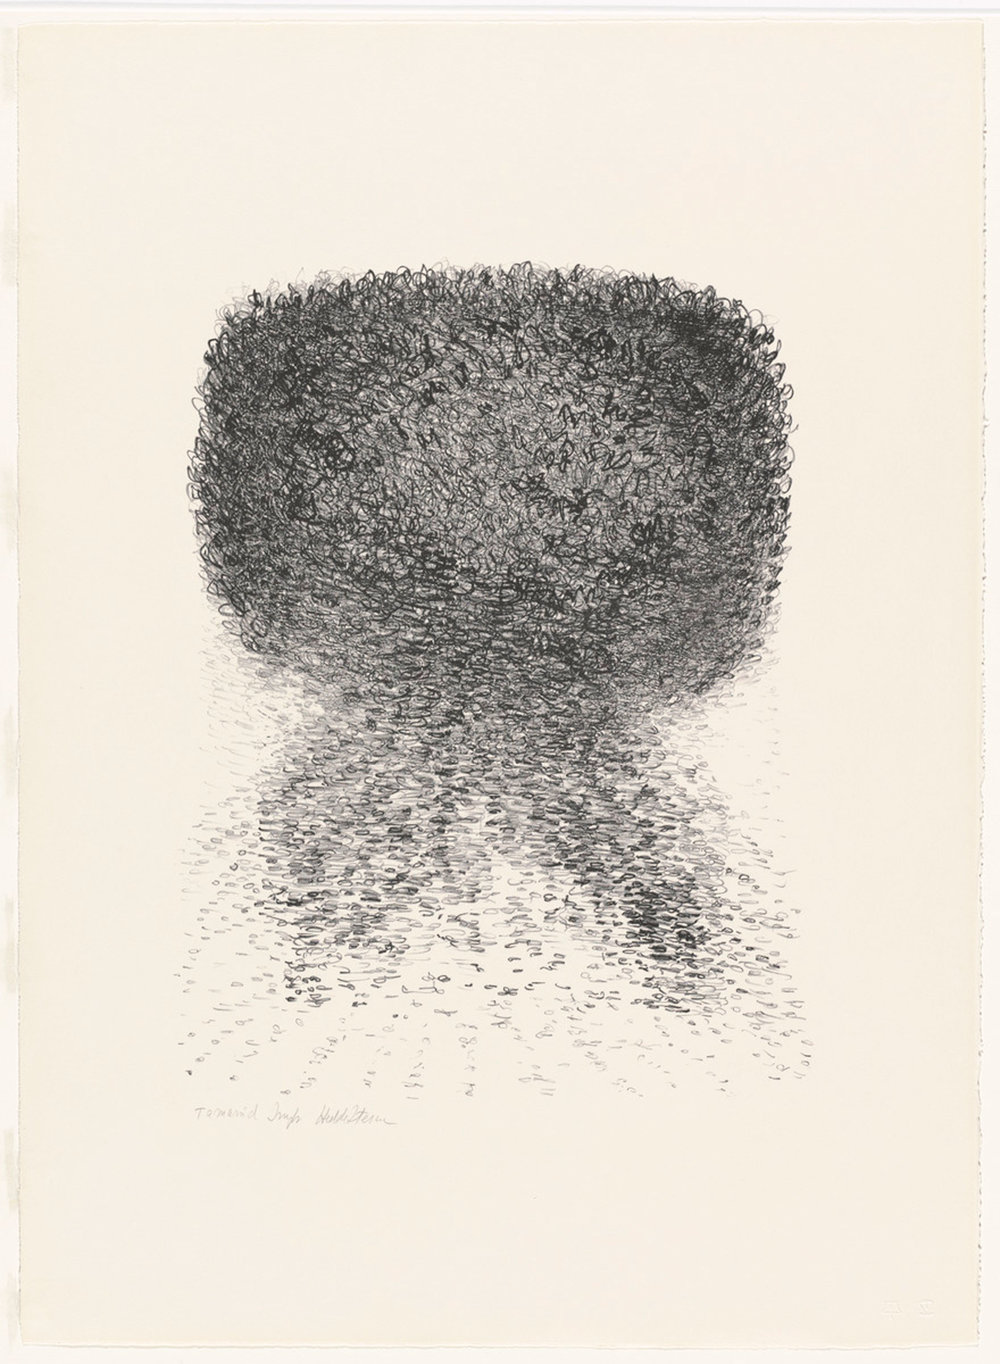 Hedda Sterne, Untitled, 1967, Lithograph (edition of 10), 29 in. x 21 in.